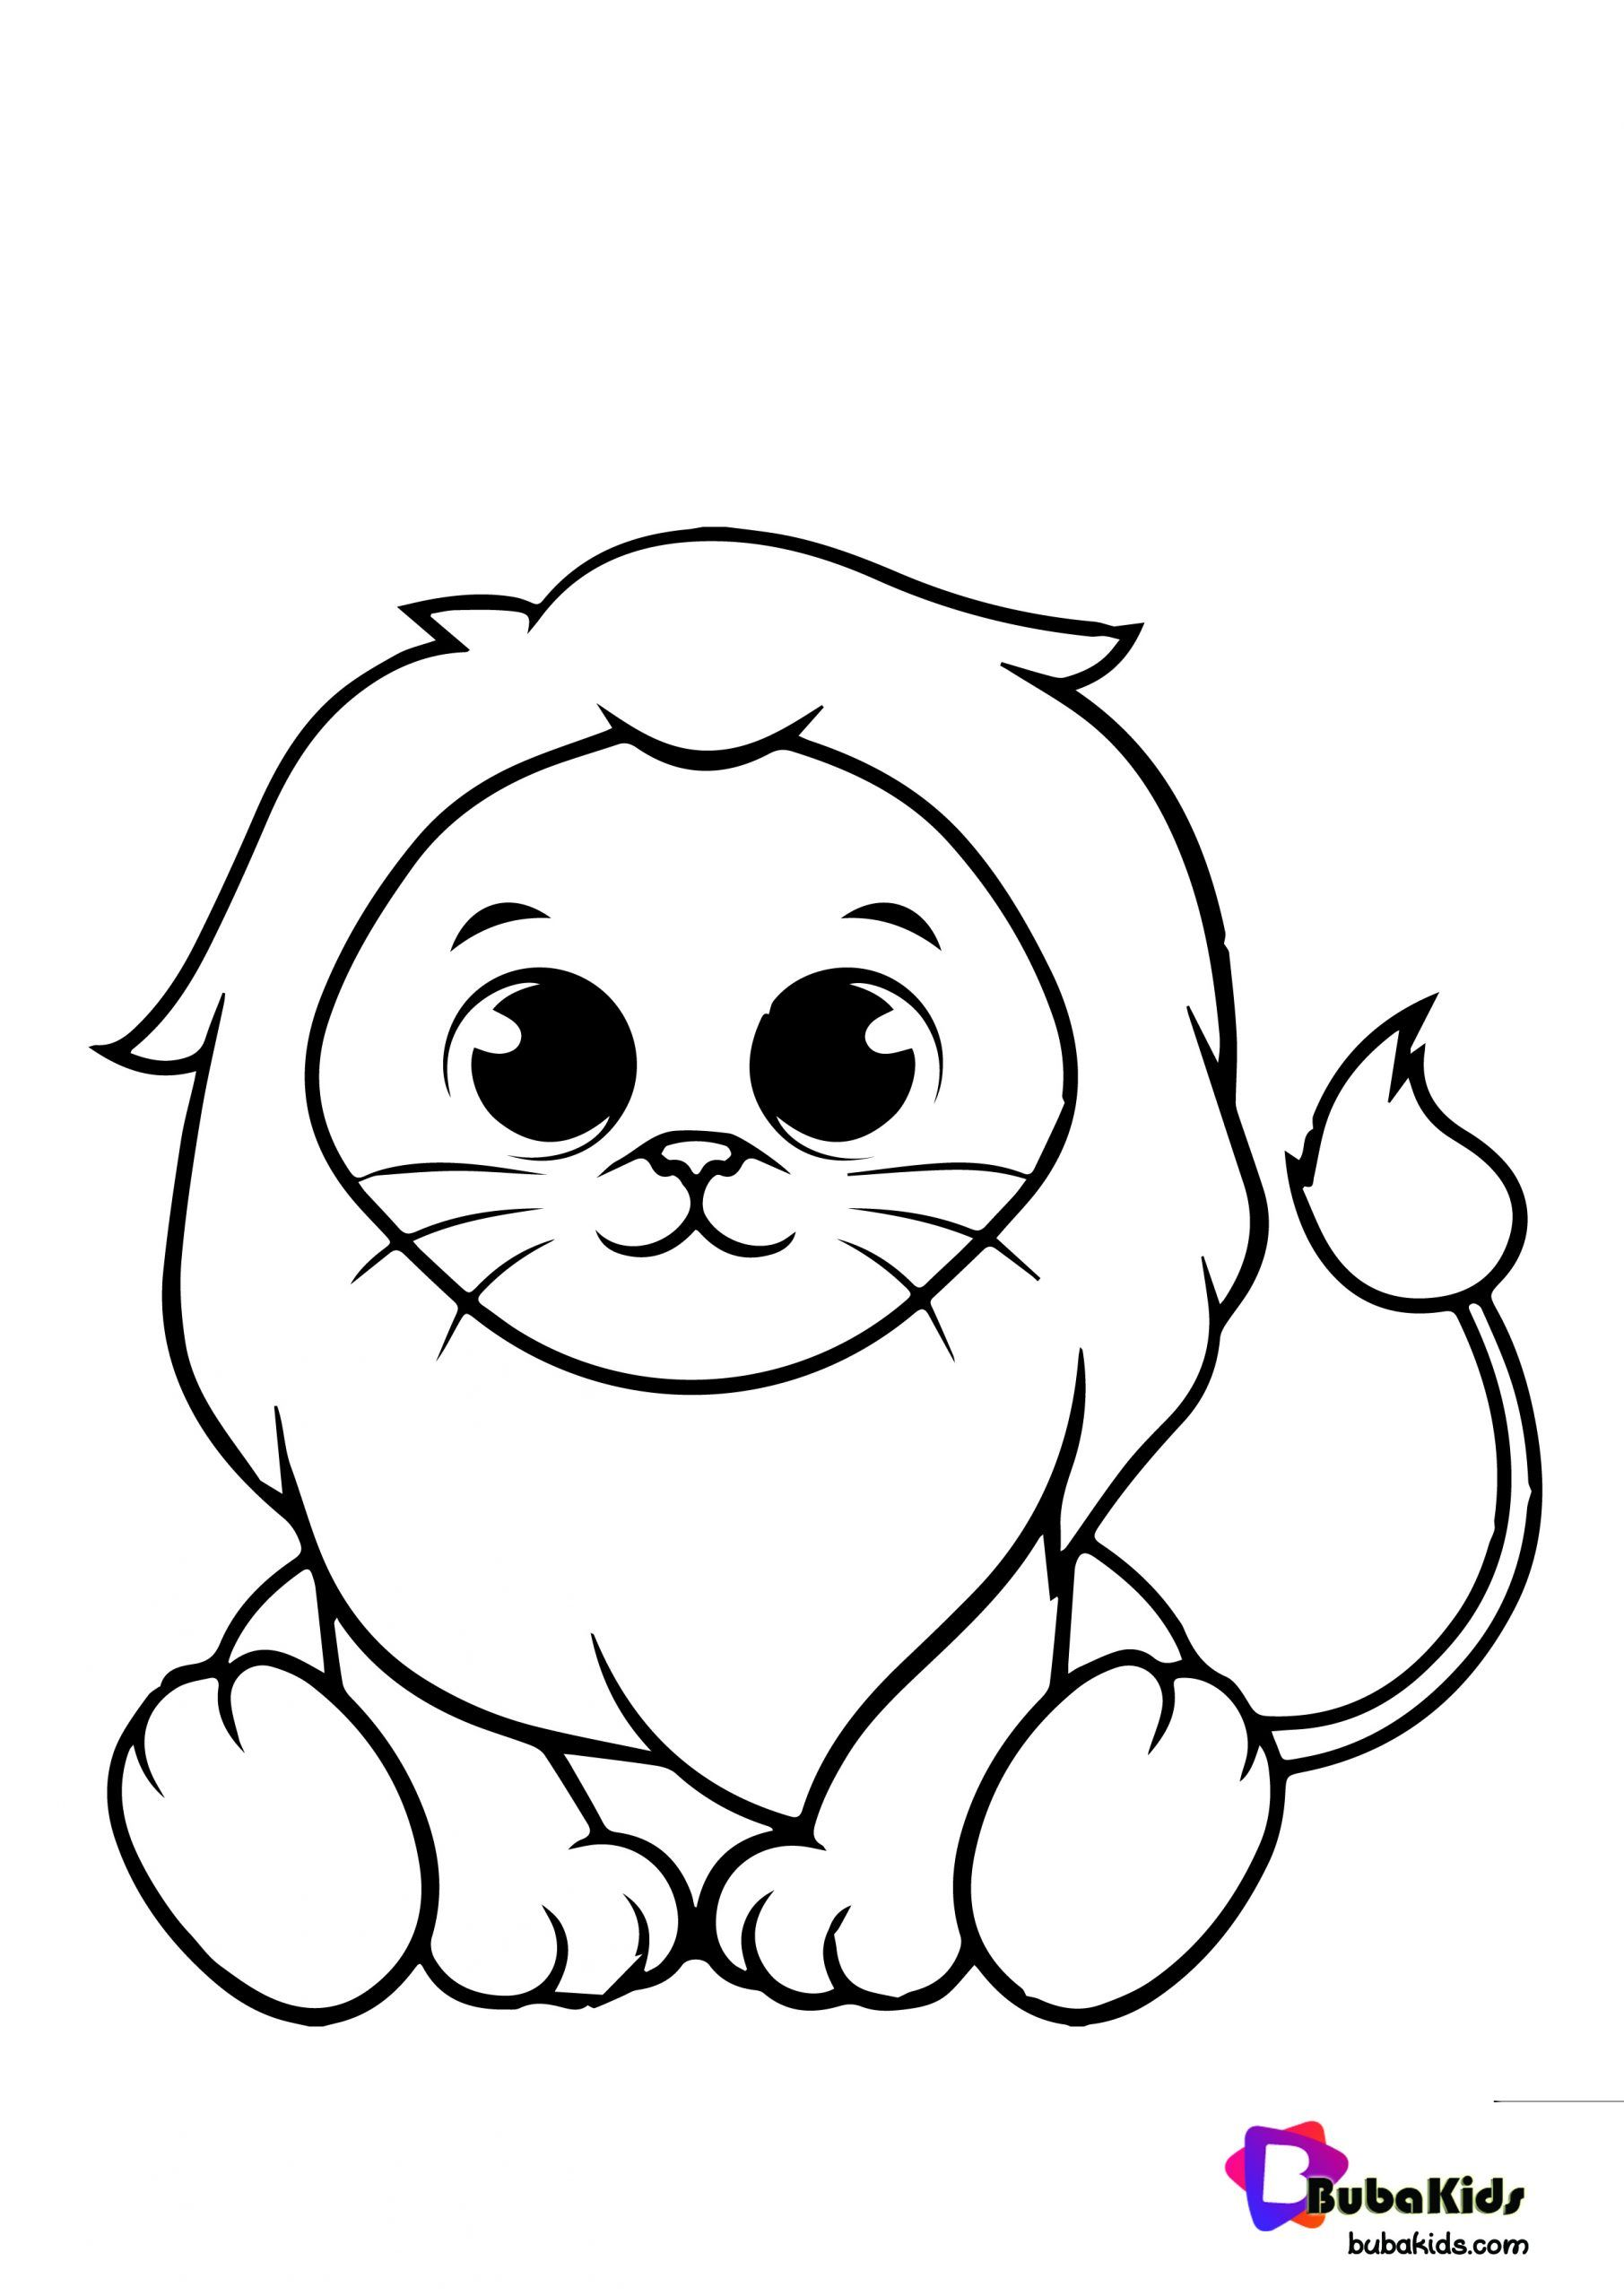 Lion Coloring Page For Toddler Collection Of Animal Coloring Pages For Teenage Printable That You Can Lion Coloring Pages Coloring Pages Animal Coloring Pages [ 2560 x 1811 Pixel ]